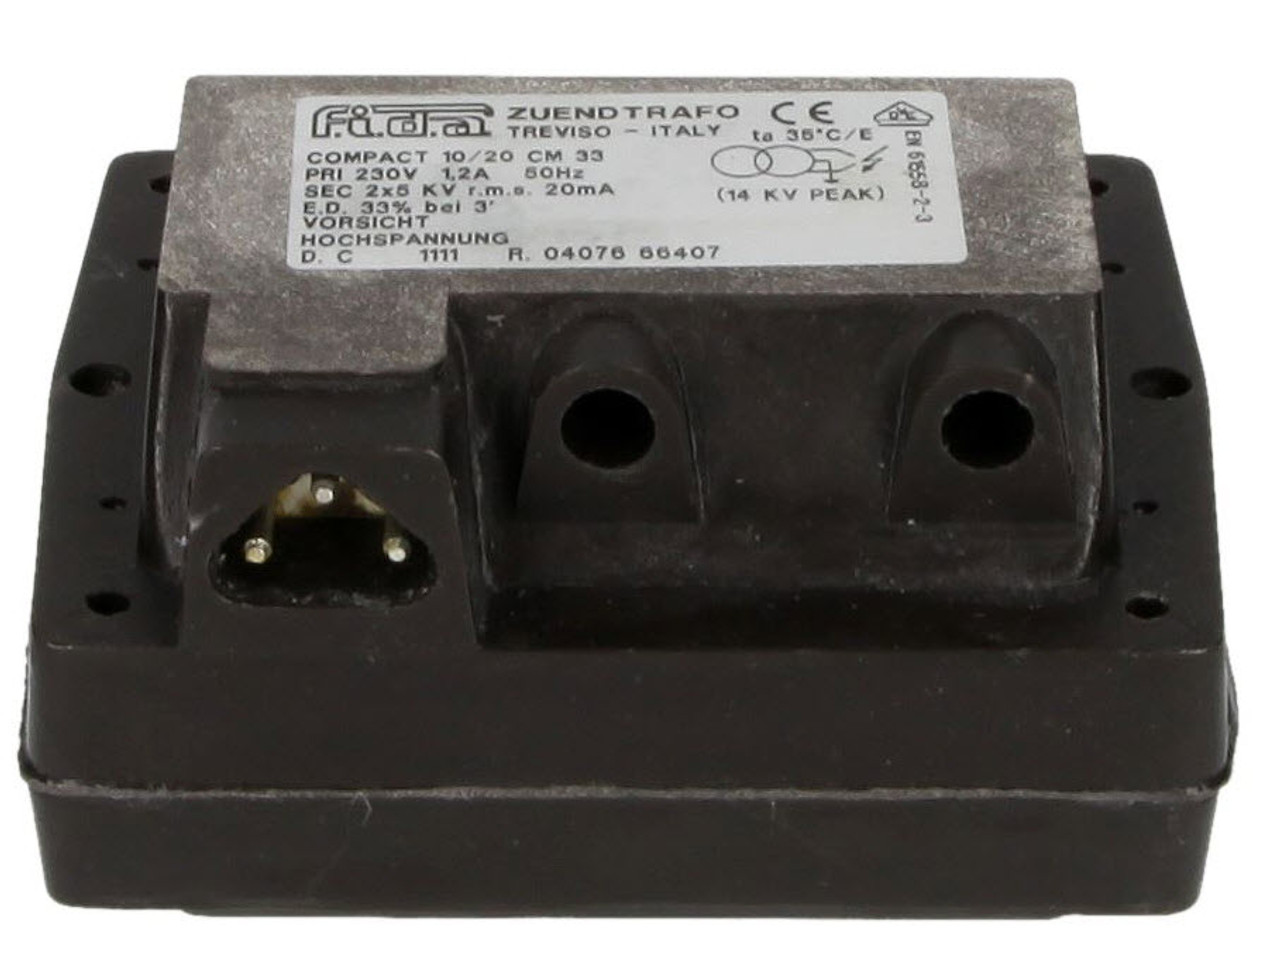 Ignition transformer FIDA 10/20 CM 33